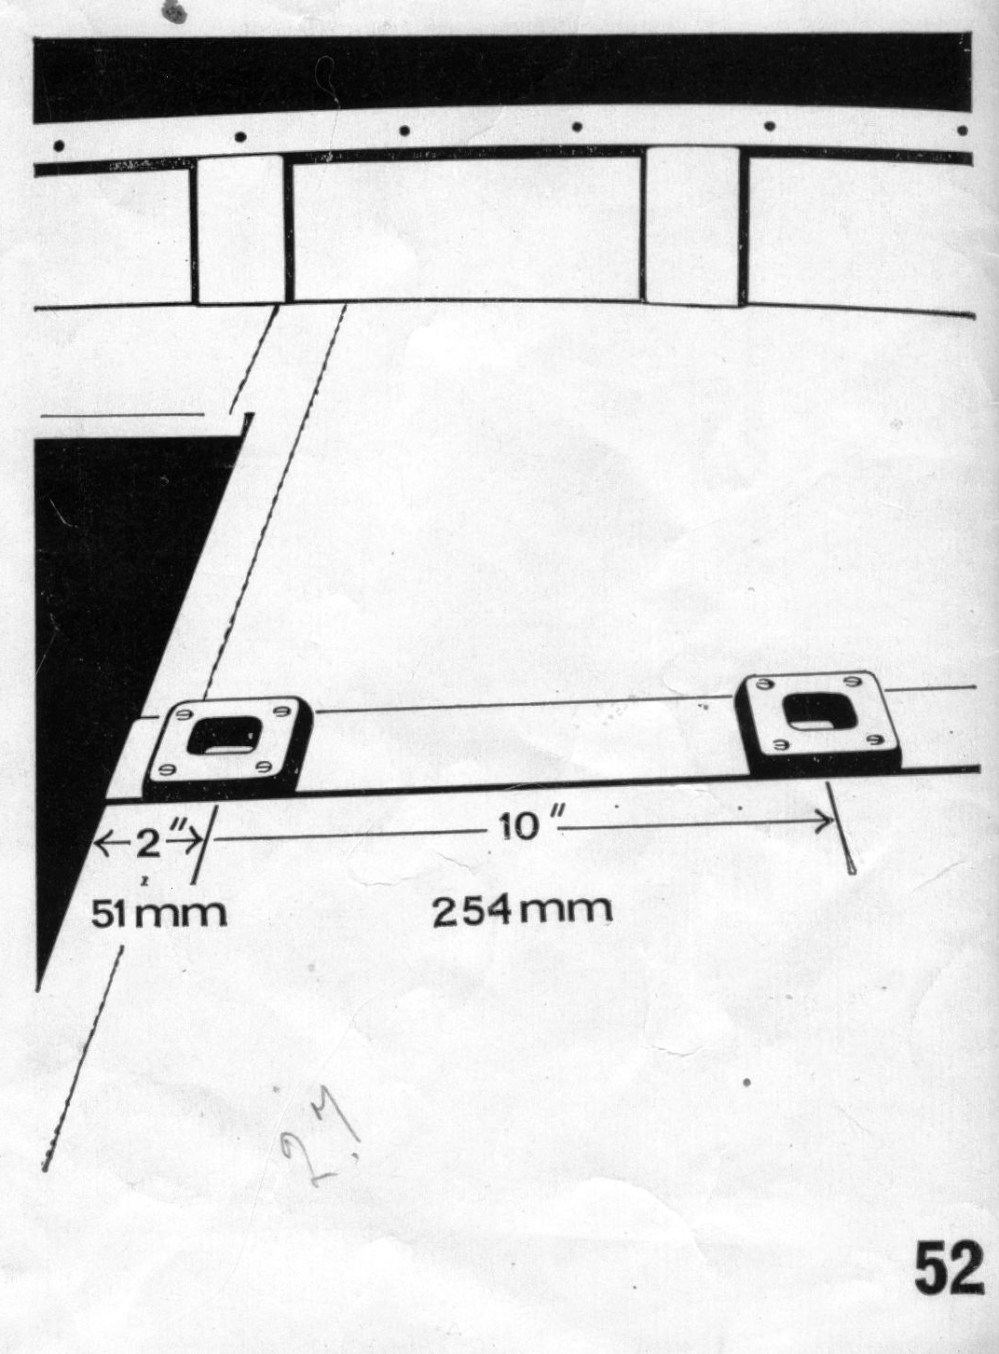 medium resolution of plate 52 from the original bell woodworking building instructions